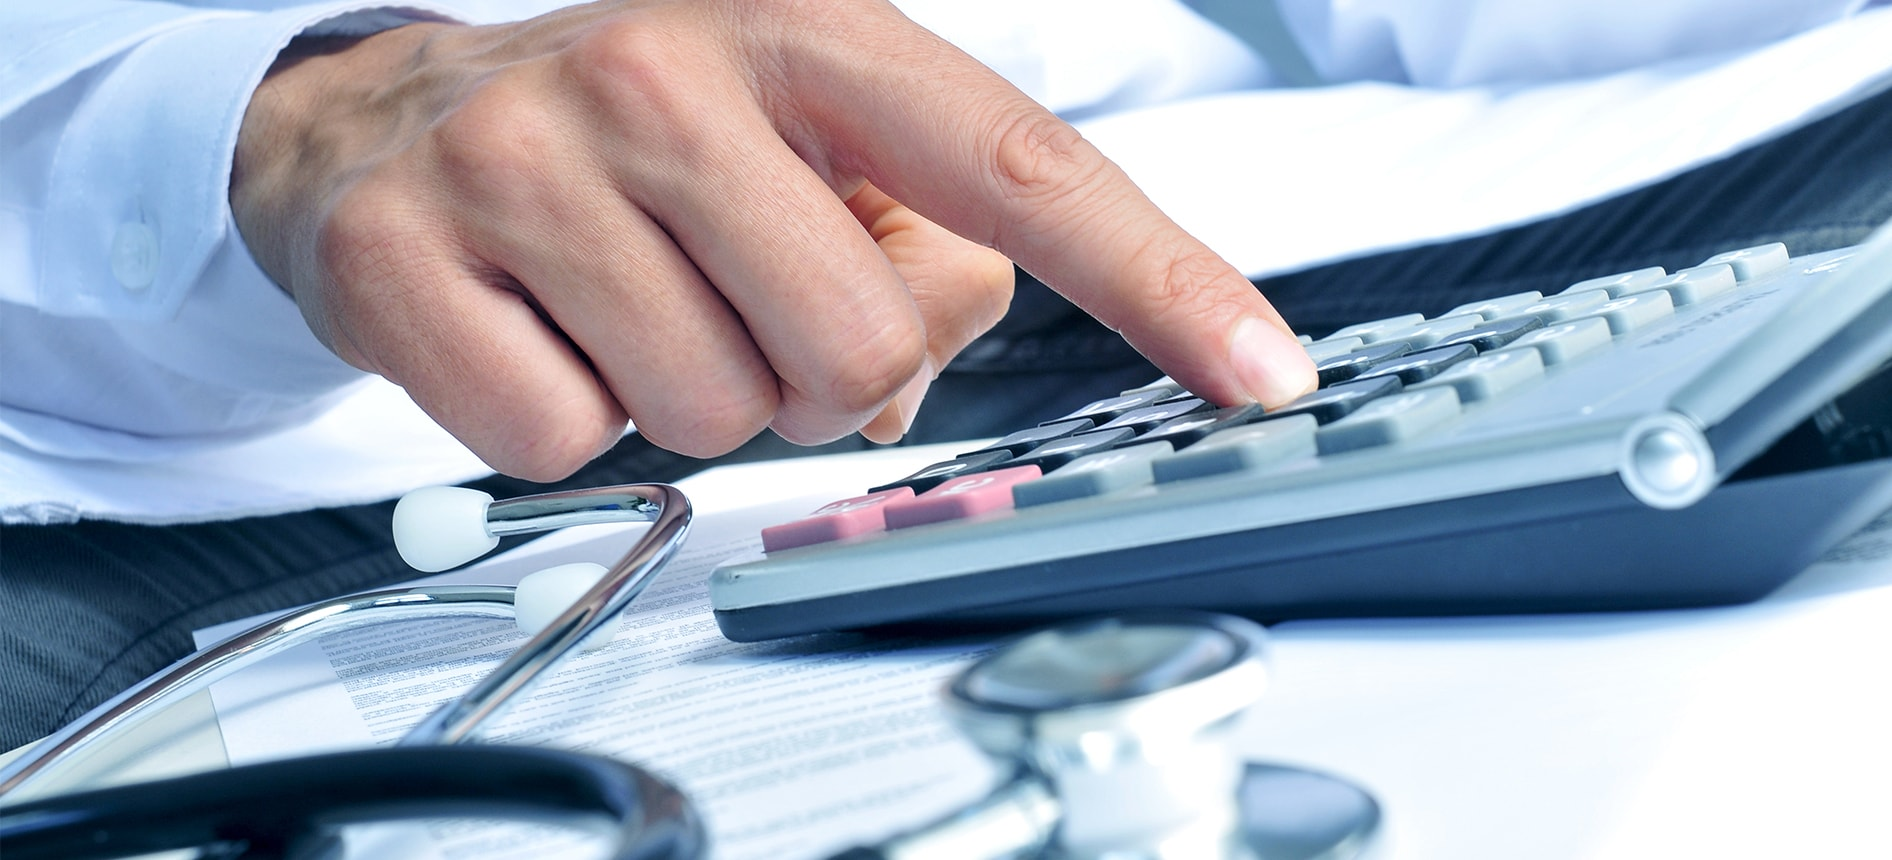 Medical Billing and Claims Management Explained image